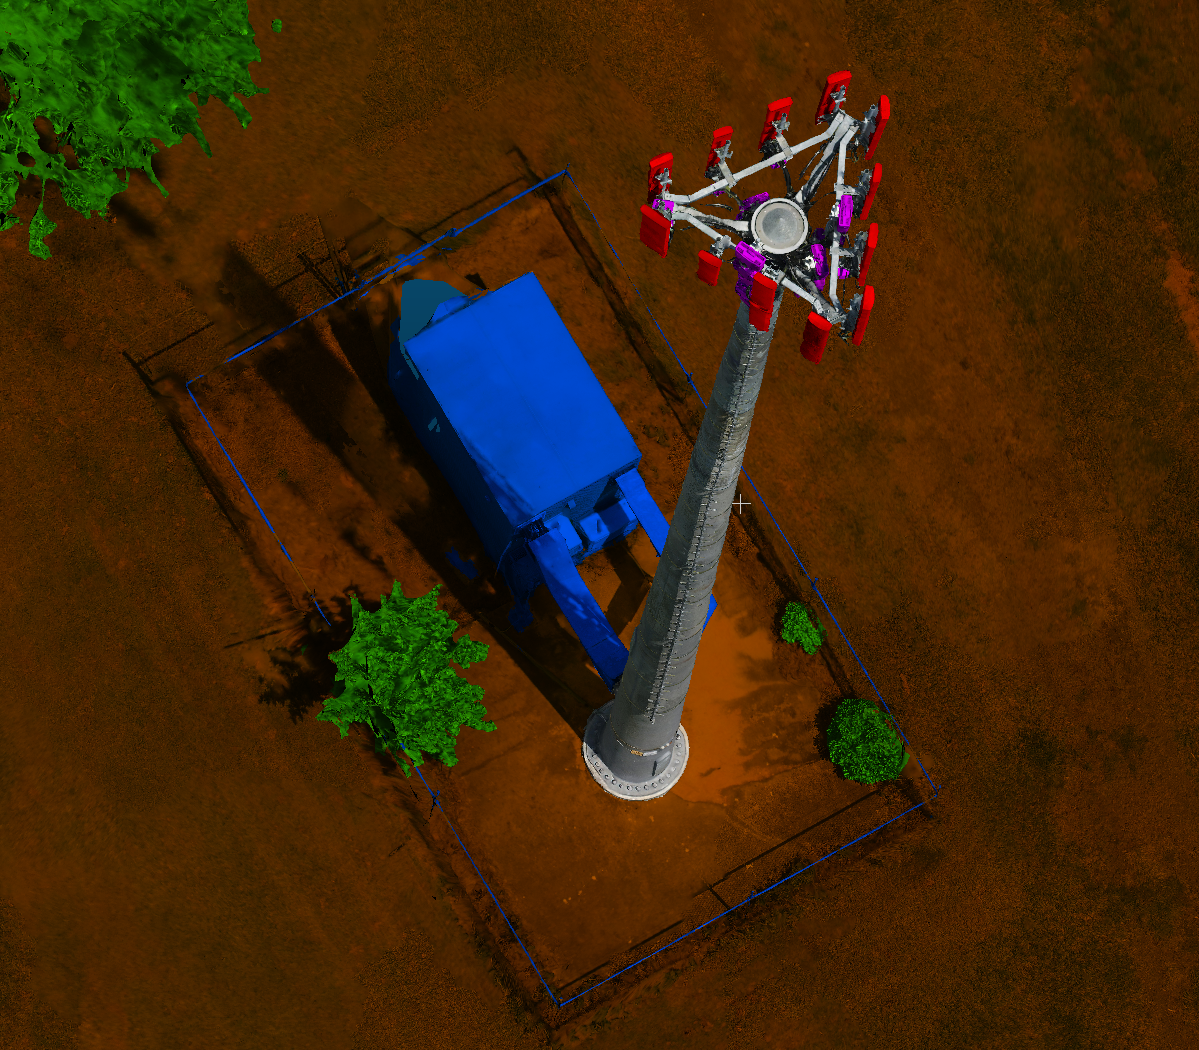 The red indicates antenna panels, purple is RRU/Box/BOB/RET, green is tree, blue is building.